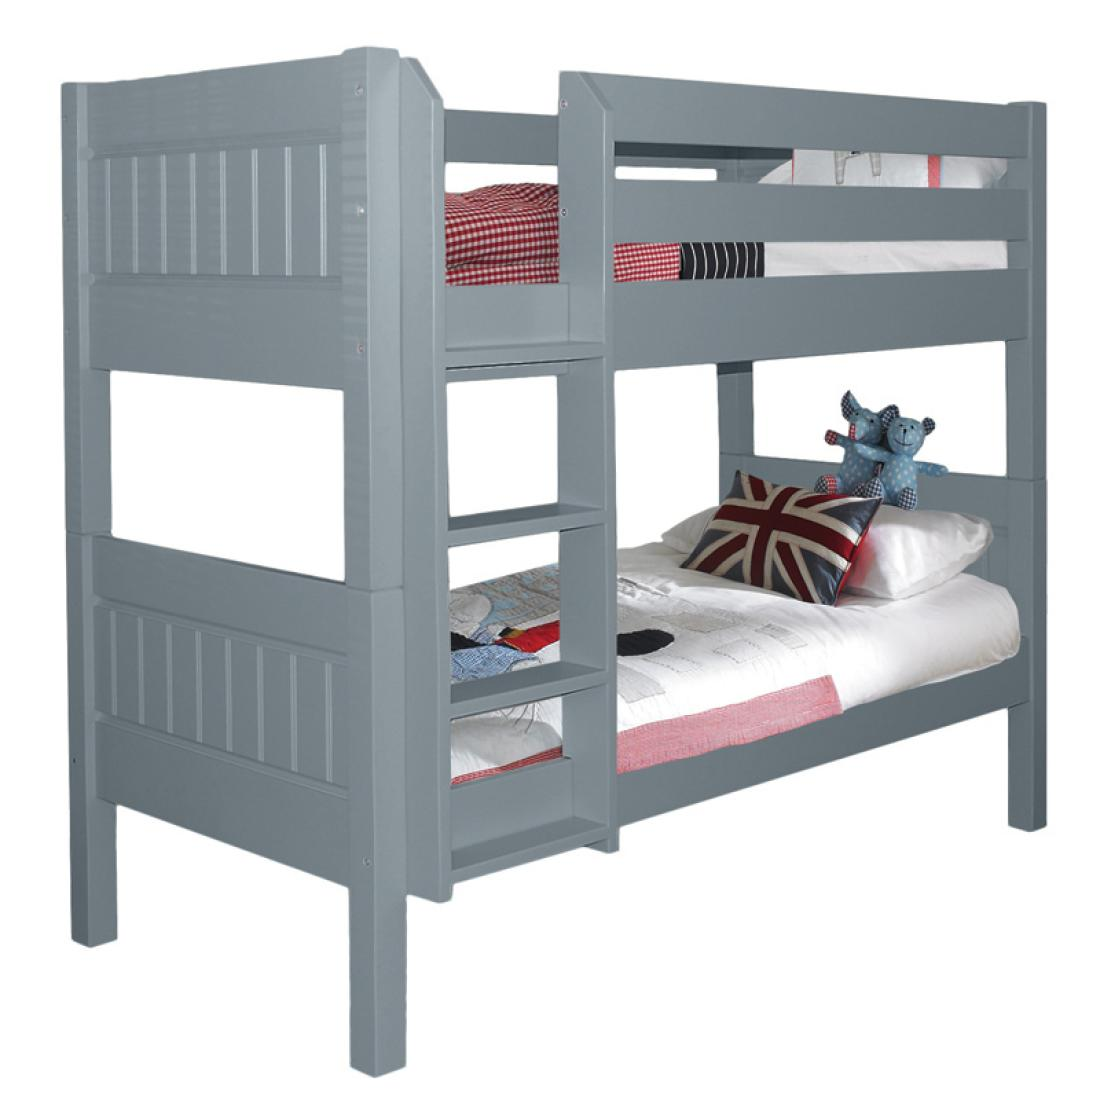 Padstow Childrens Bunk Bed